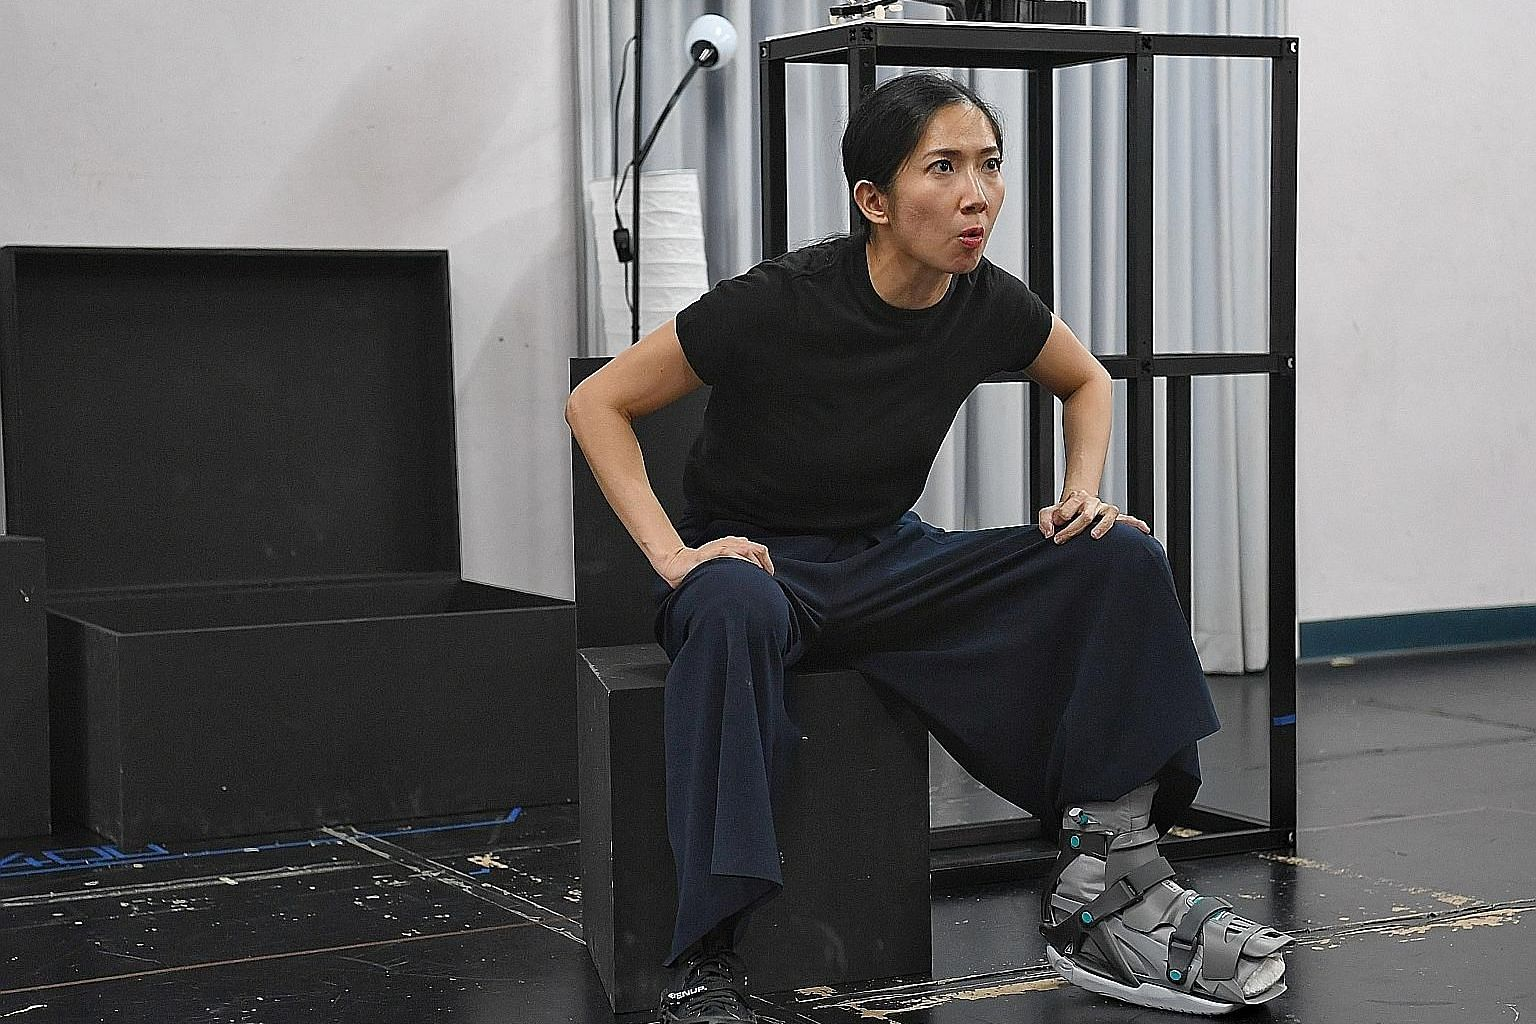 Jo Tan rehearsing Forked, which was partly inspired by her training stint in Paris and her journey as an actress.